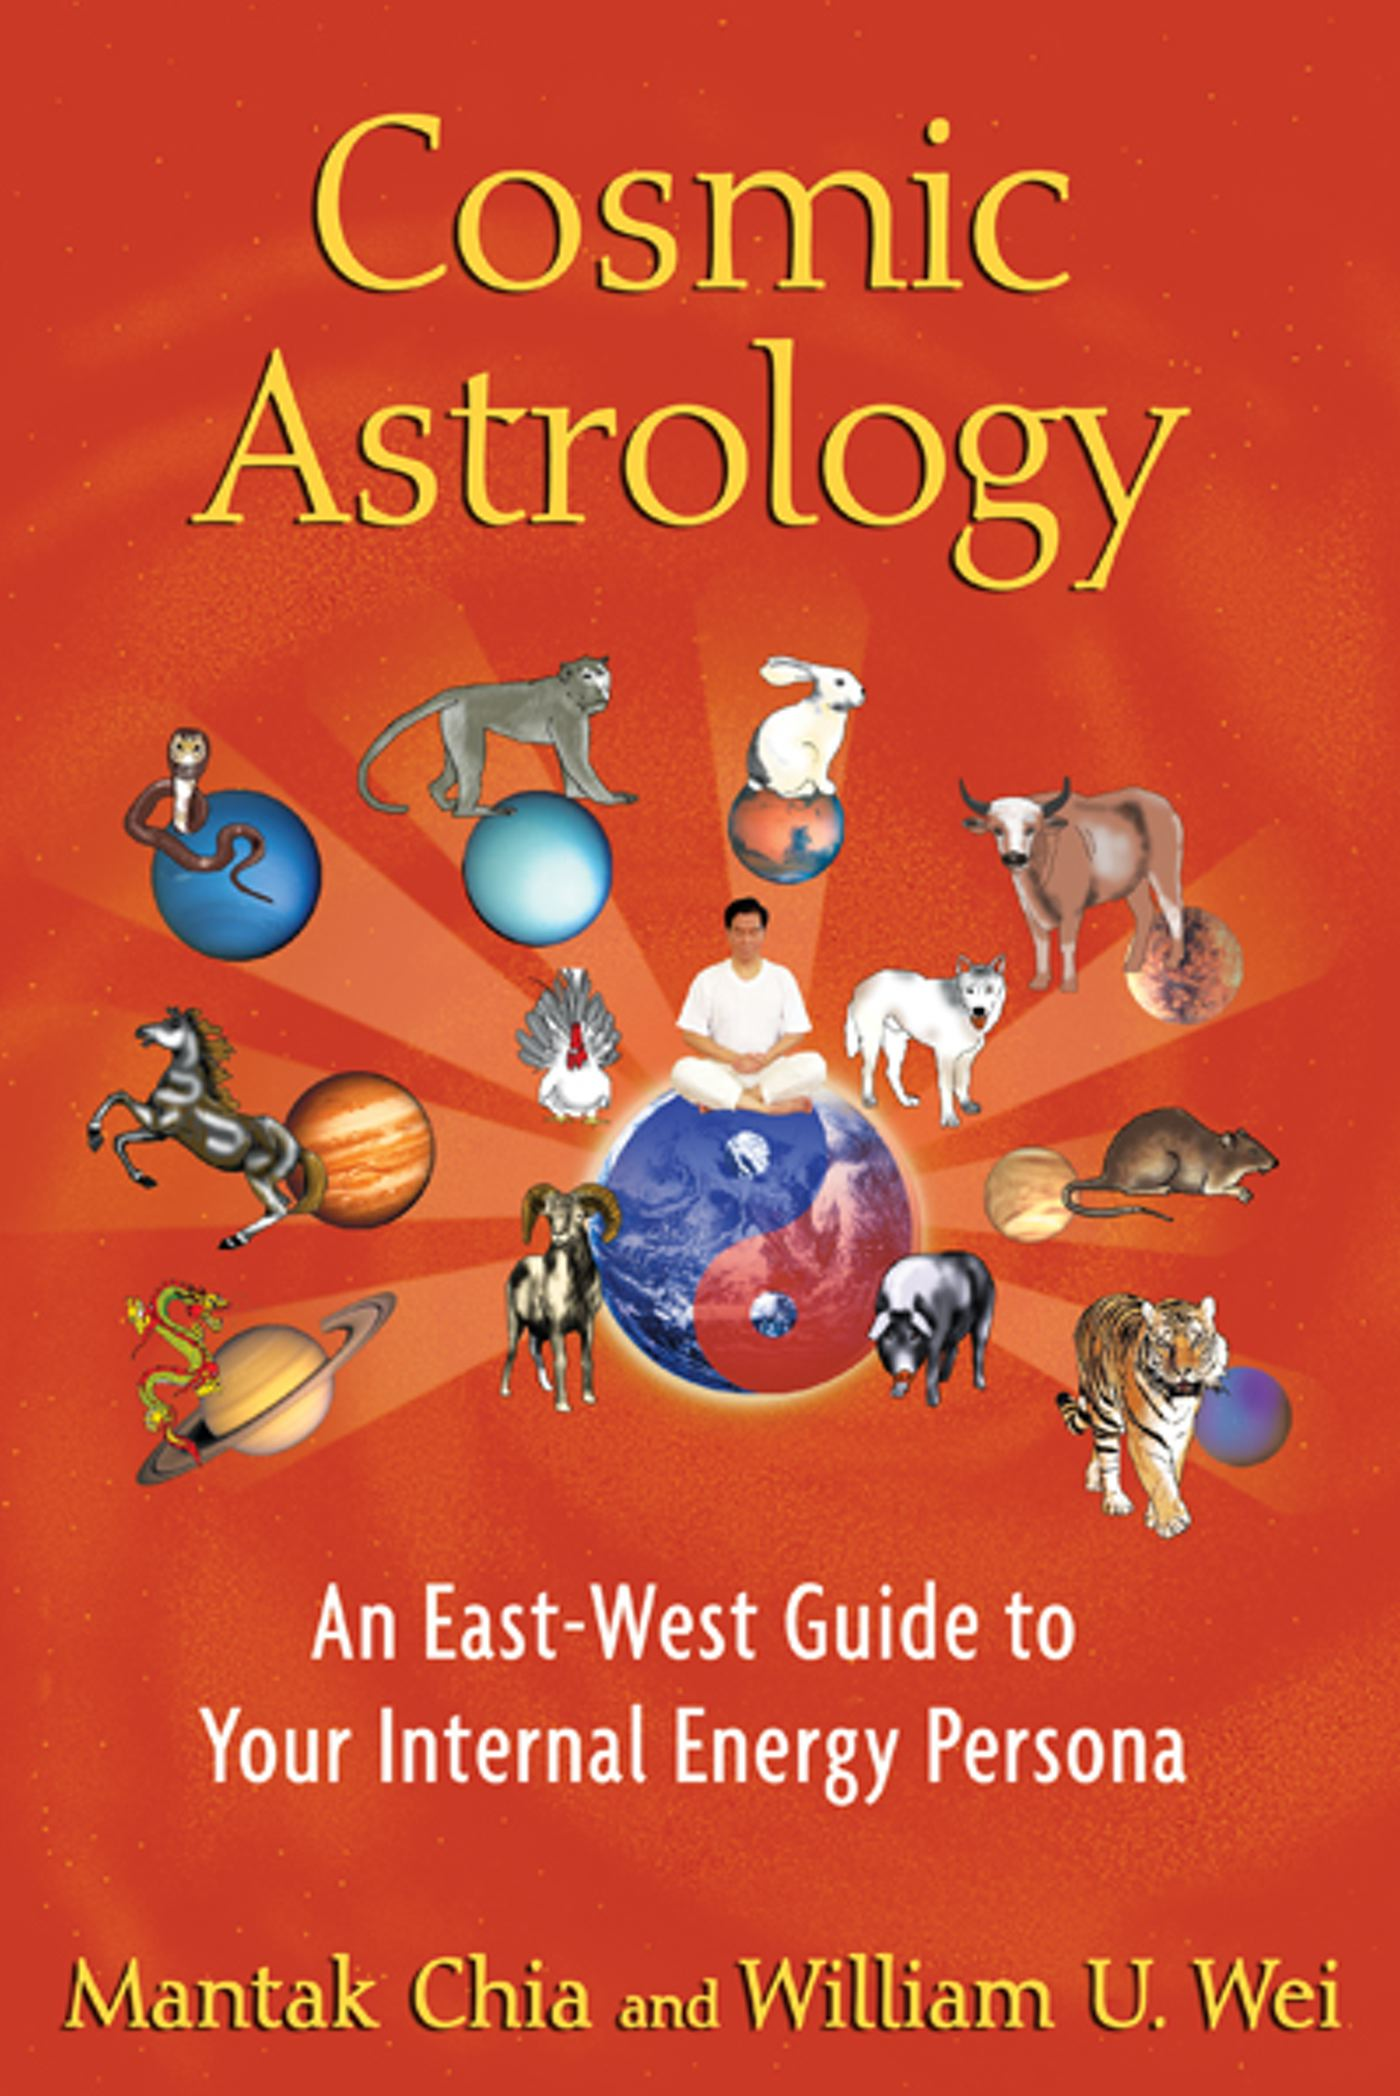 Cosmic Astrology | Book by Mantak Chia, William U  Wei | Official